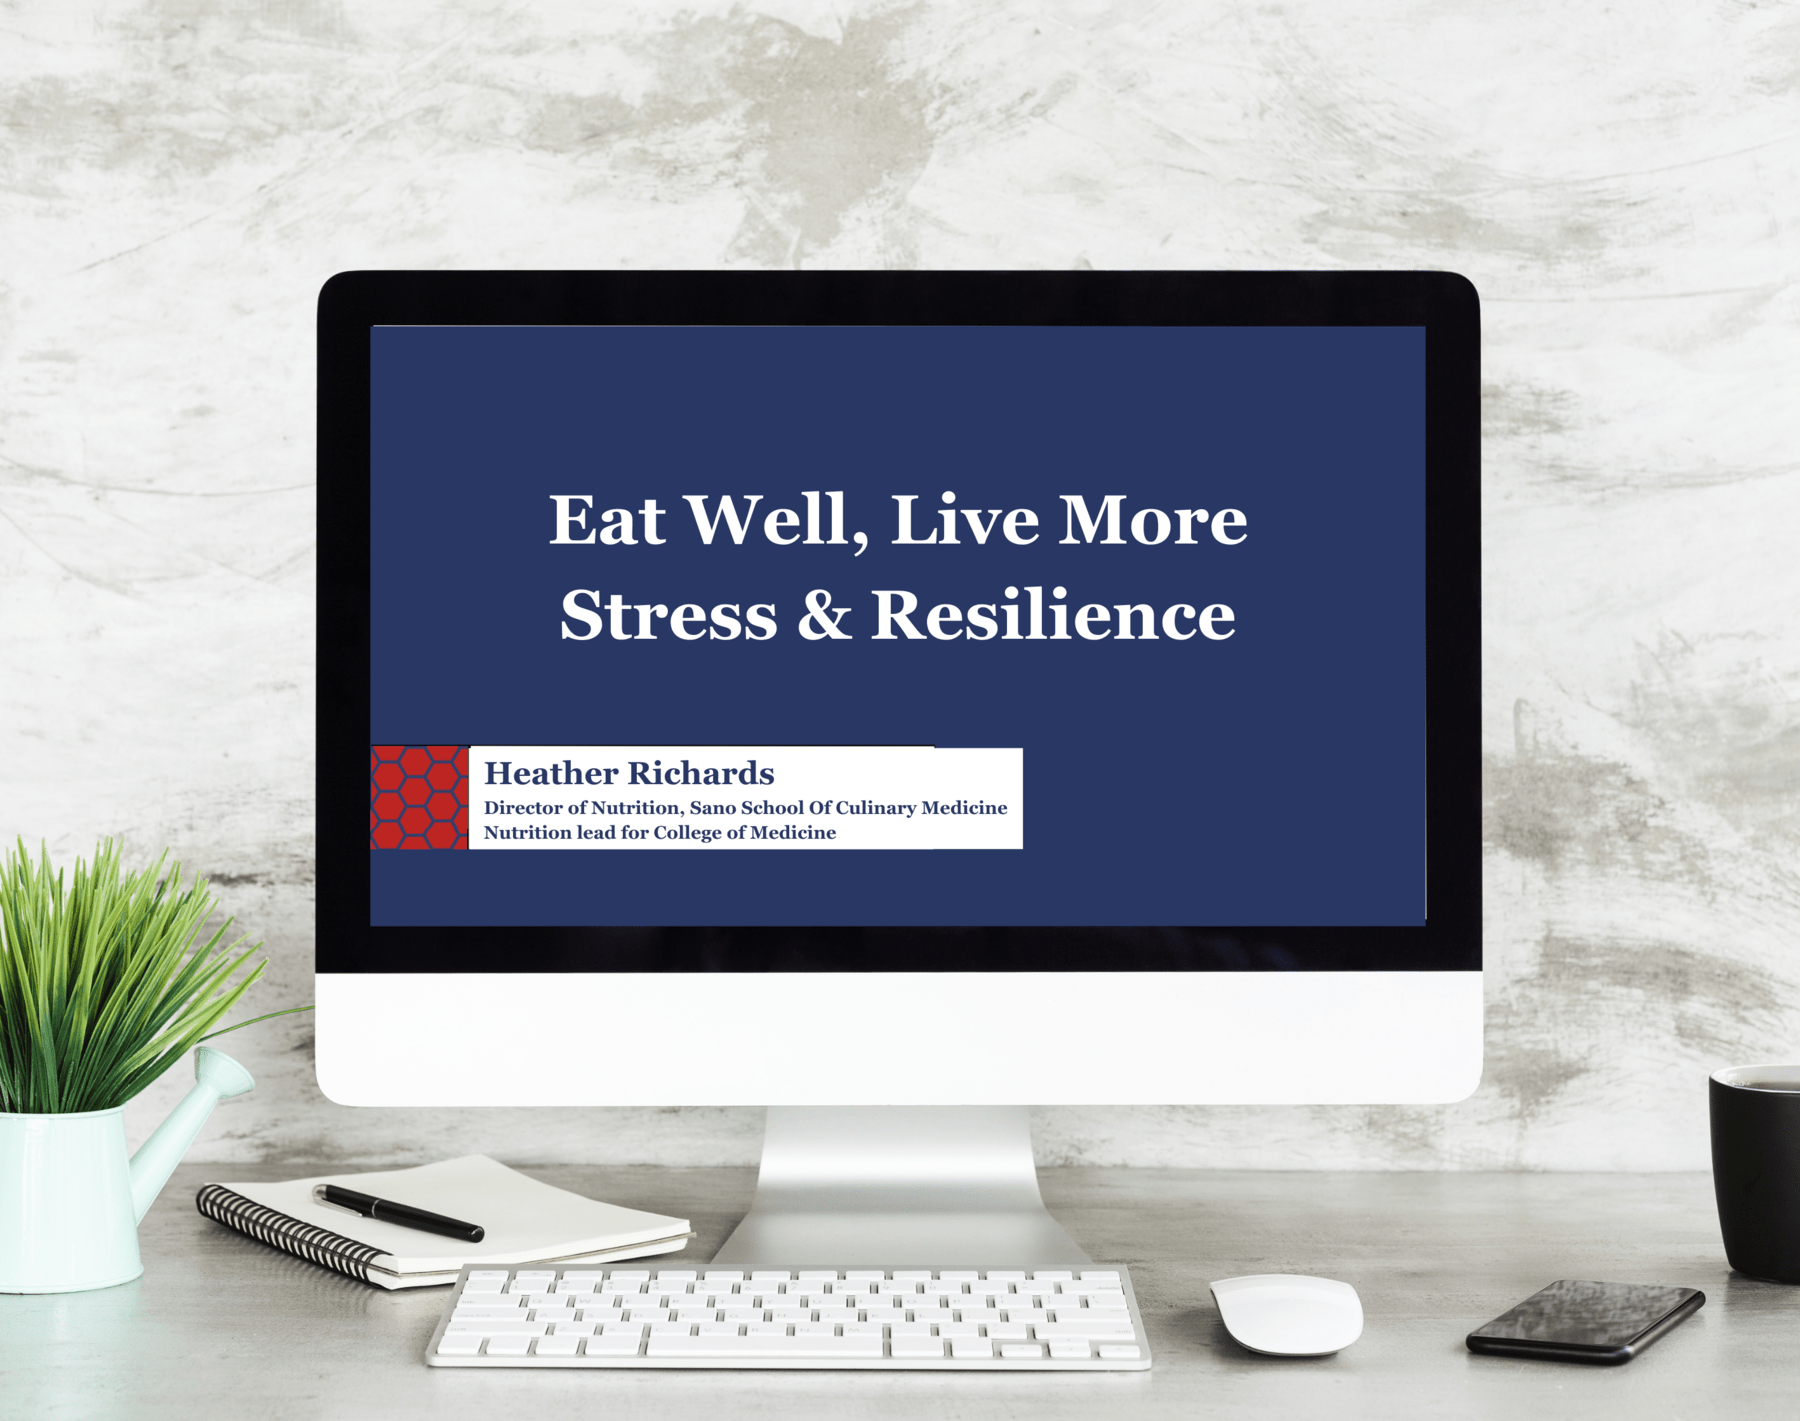 Stress and Resilience webinar